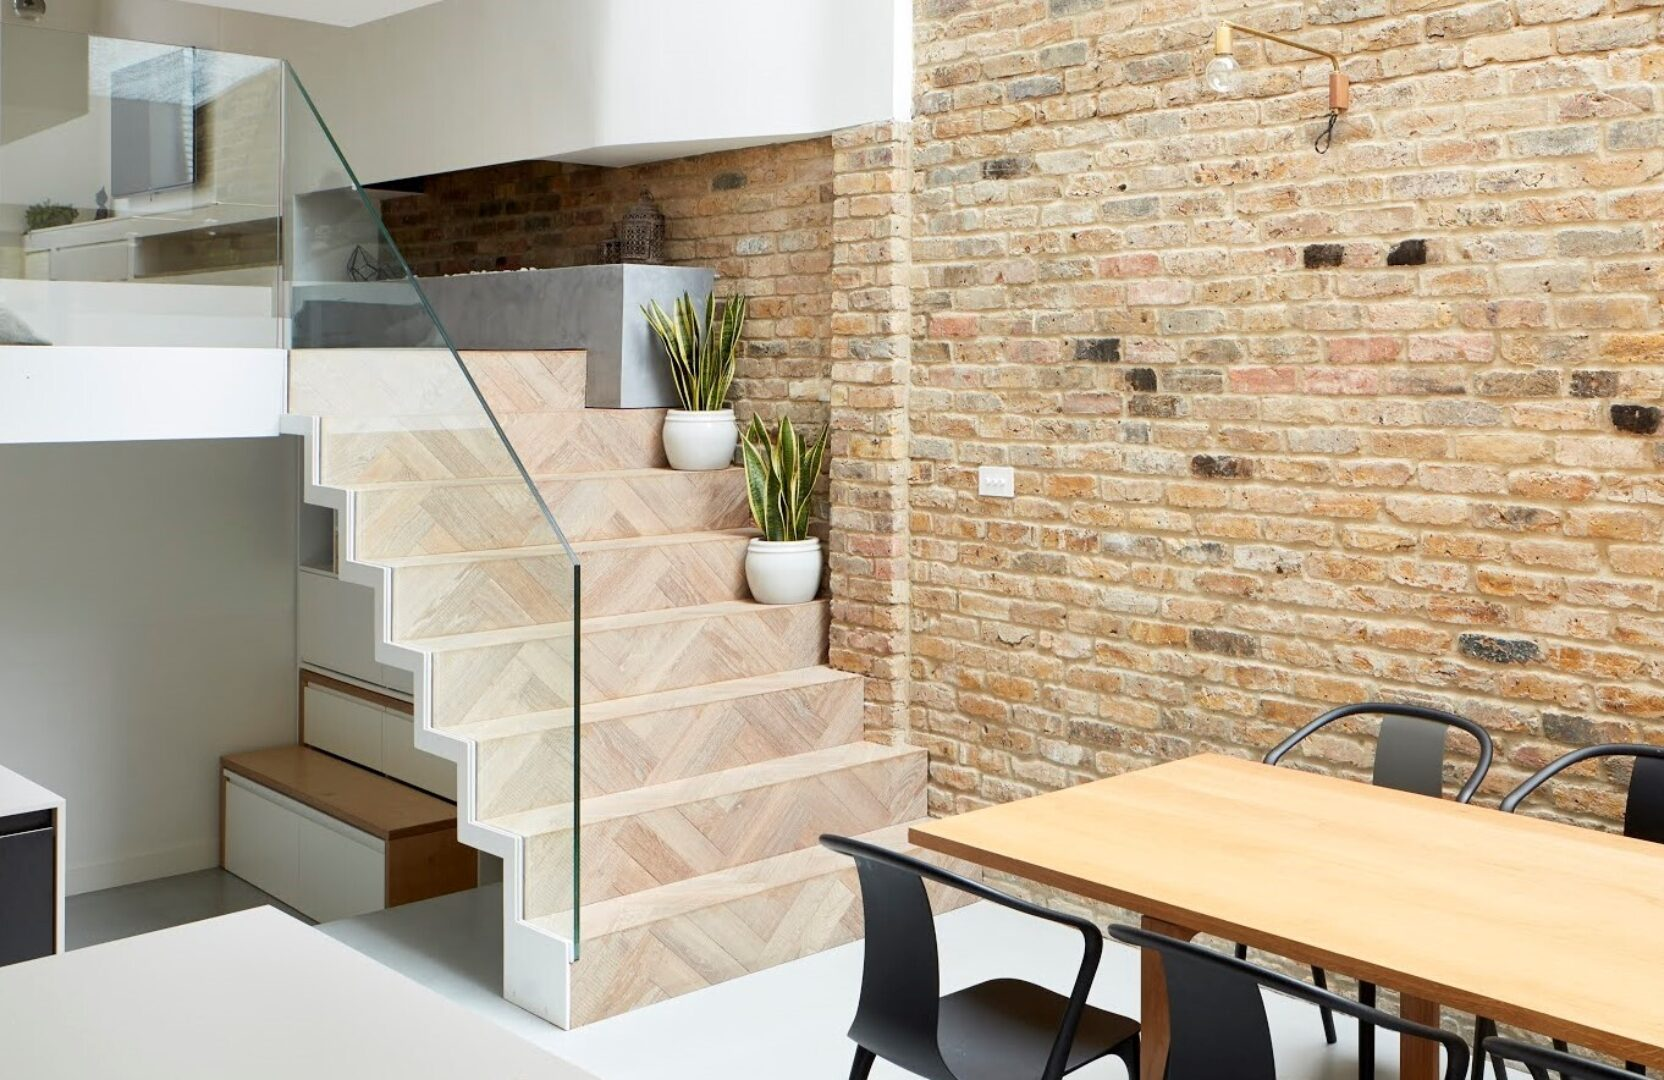 Steps with herringbone detail at the scenario house